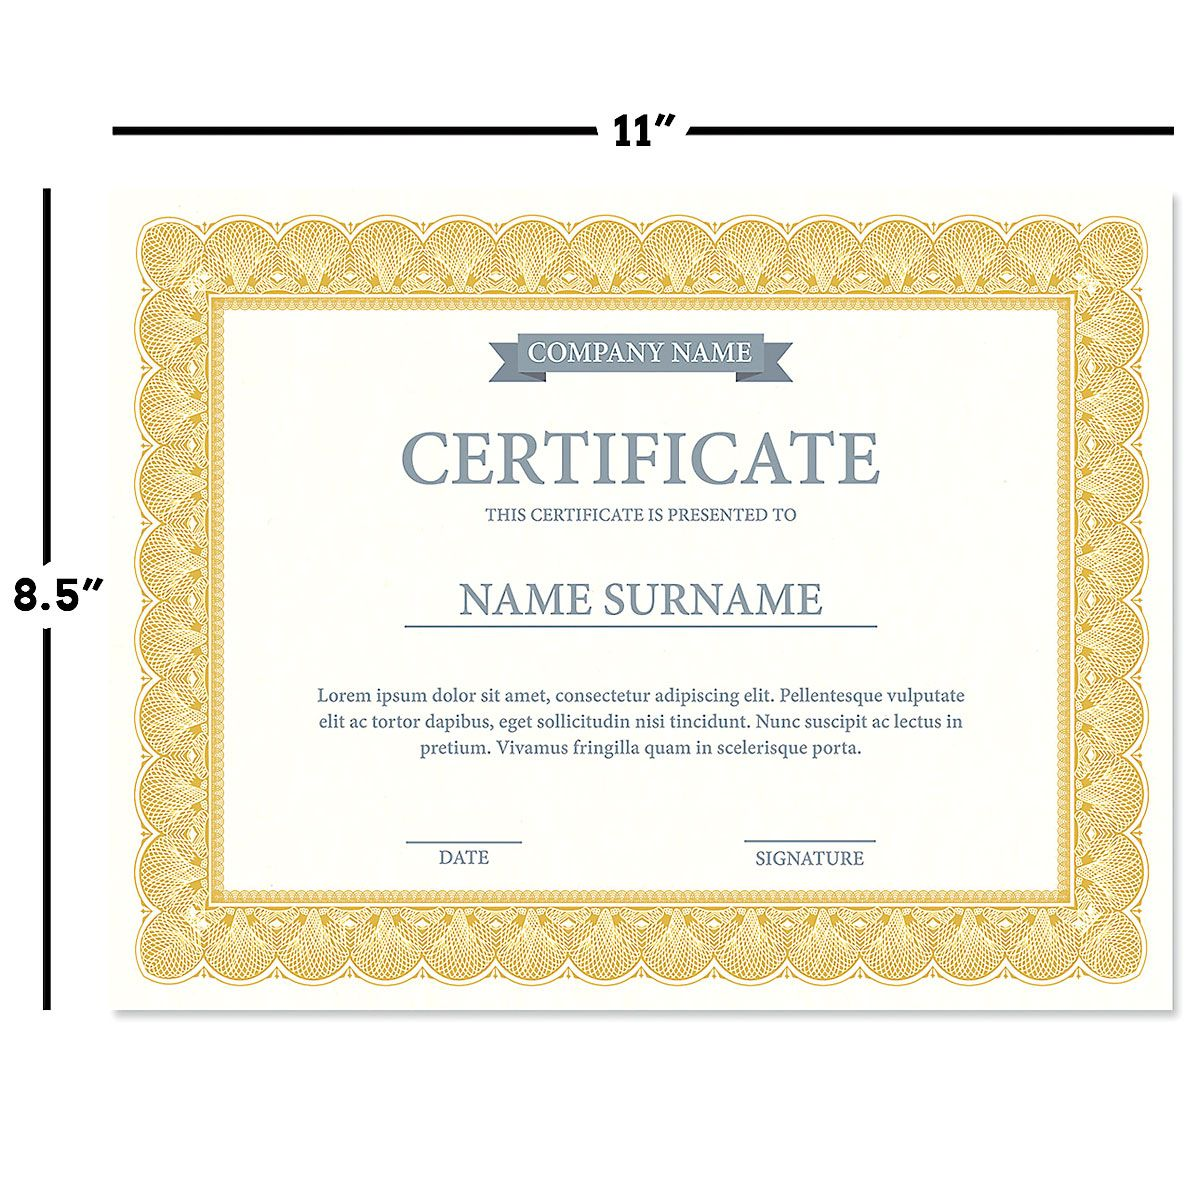 Gold Certificate on White Parchment - Set of 100